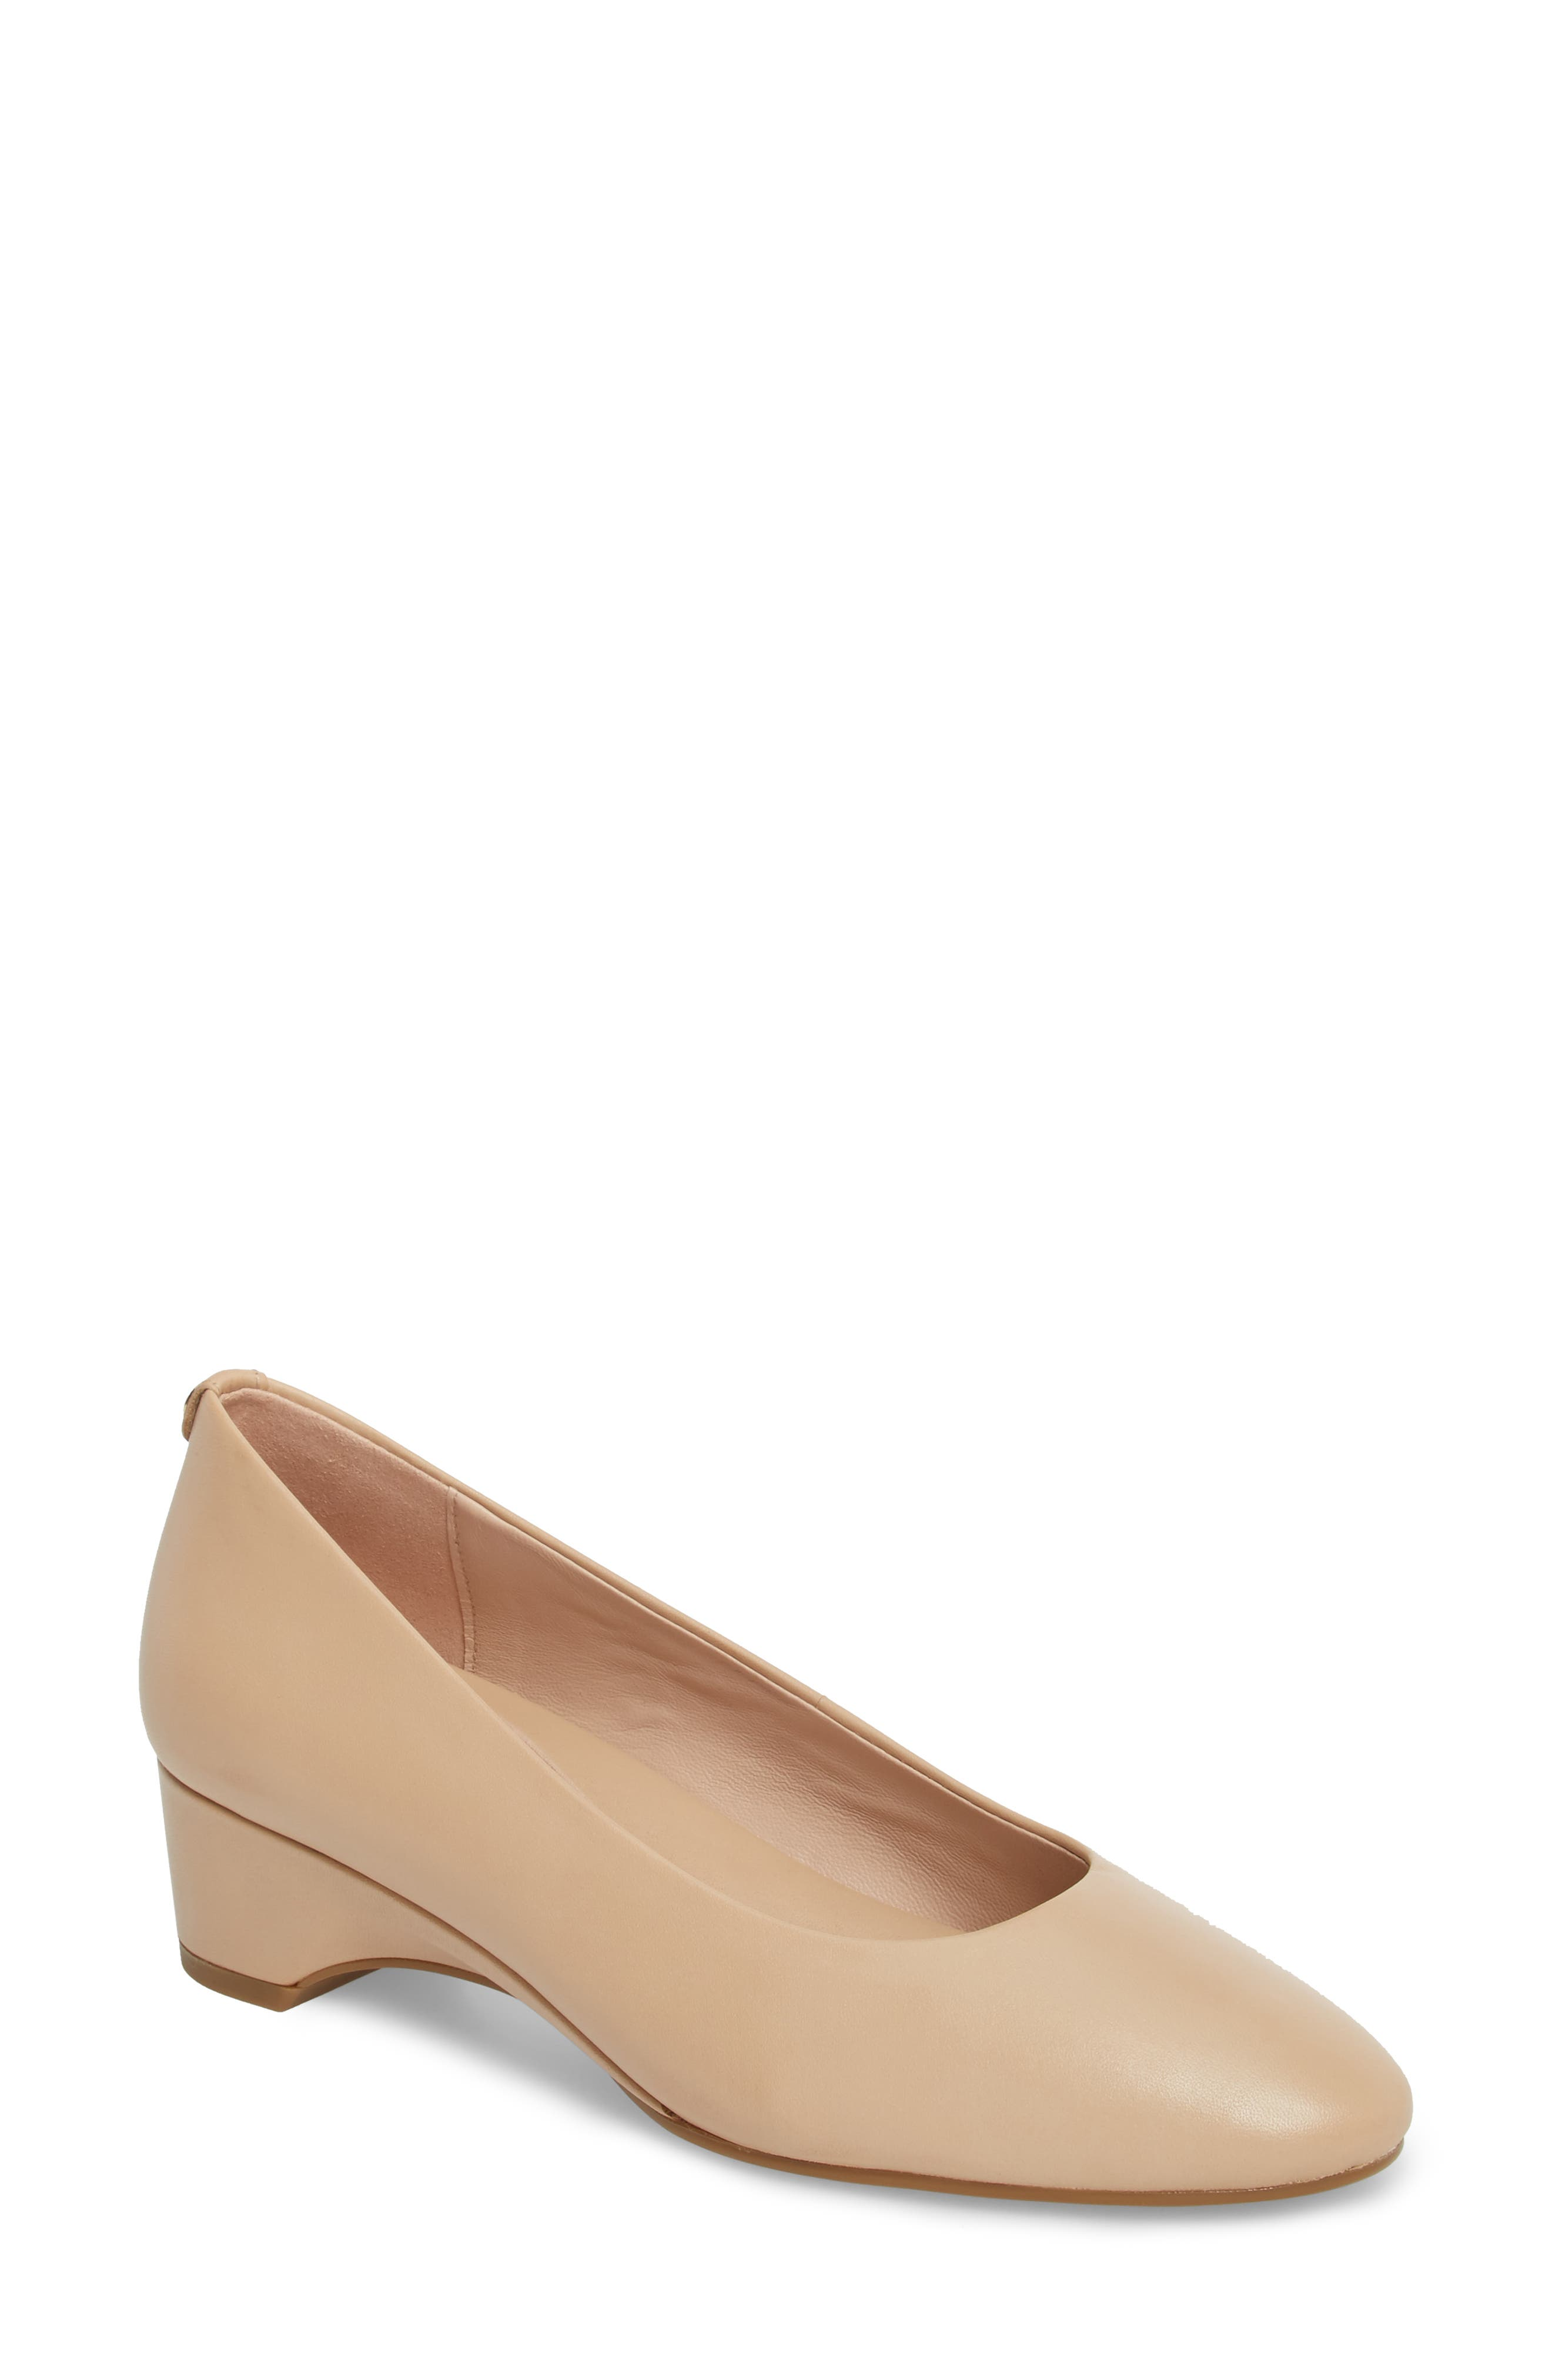 Babs Wedge Pump,                         Main,                         color, Sand Leather